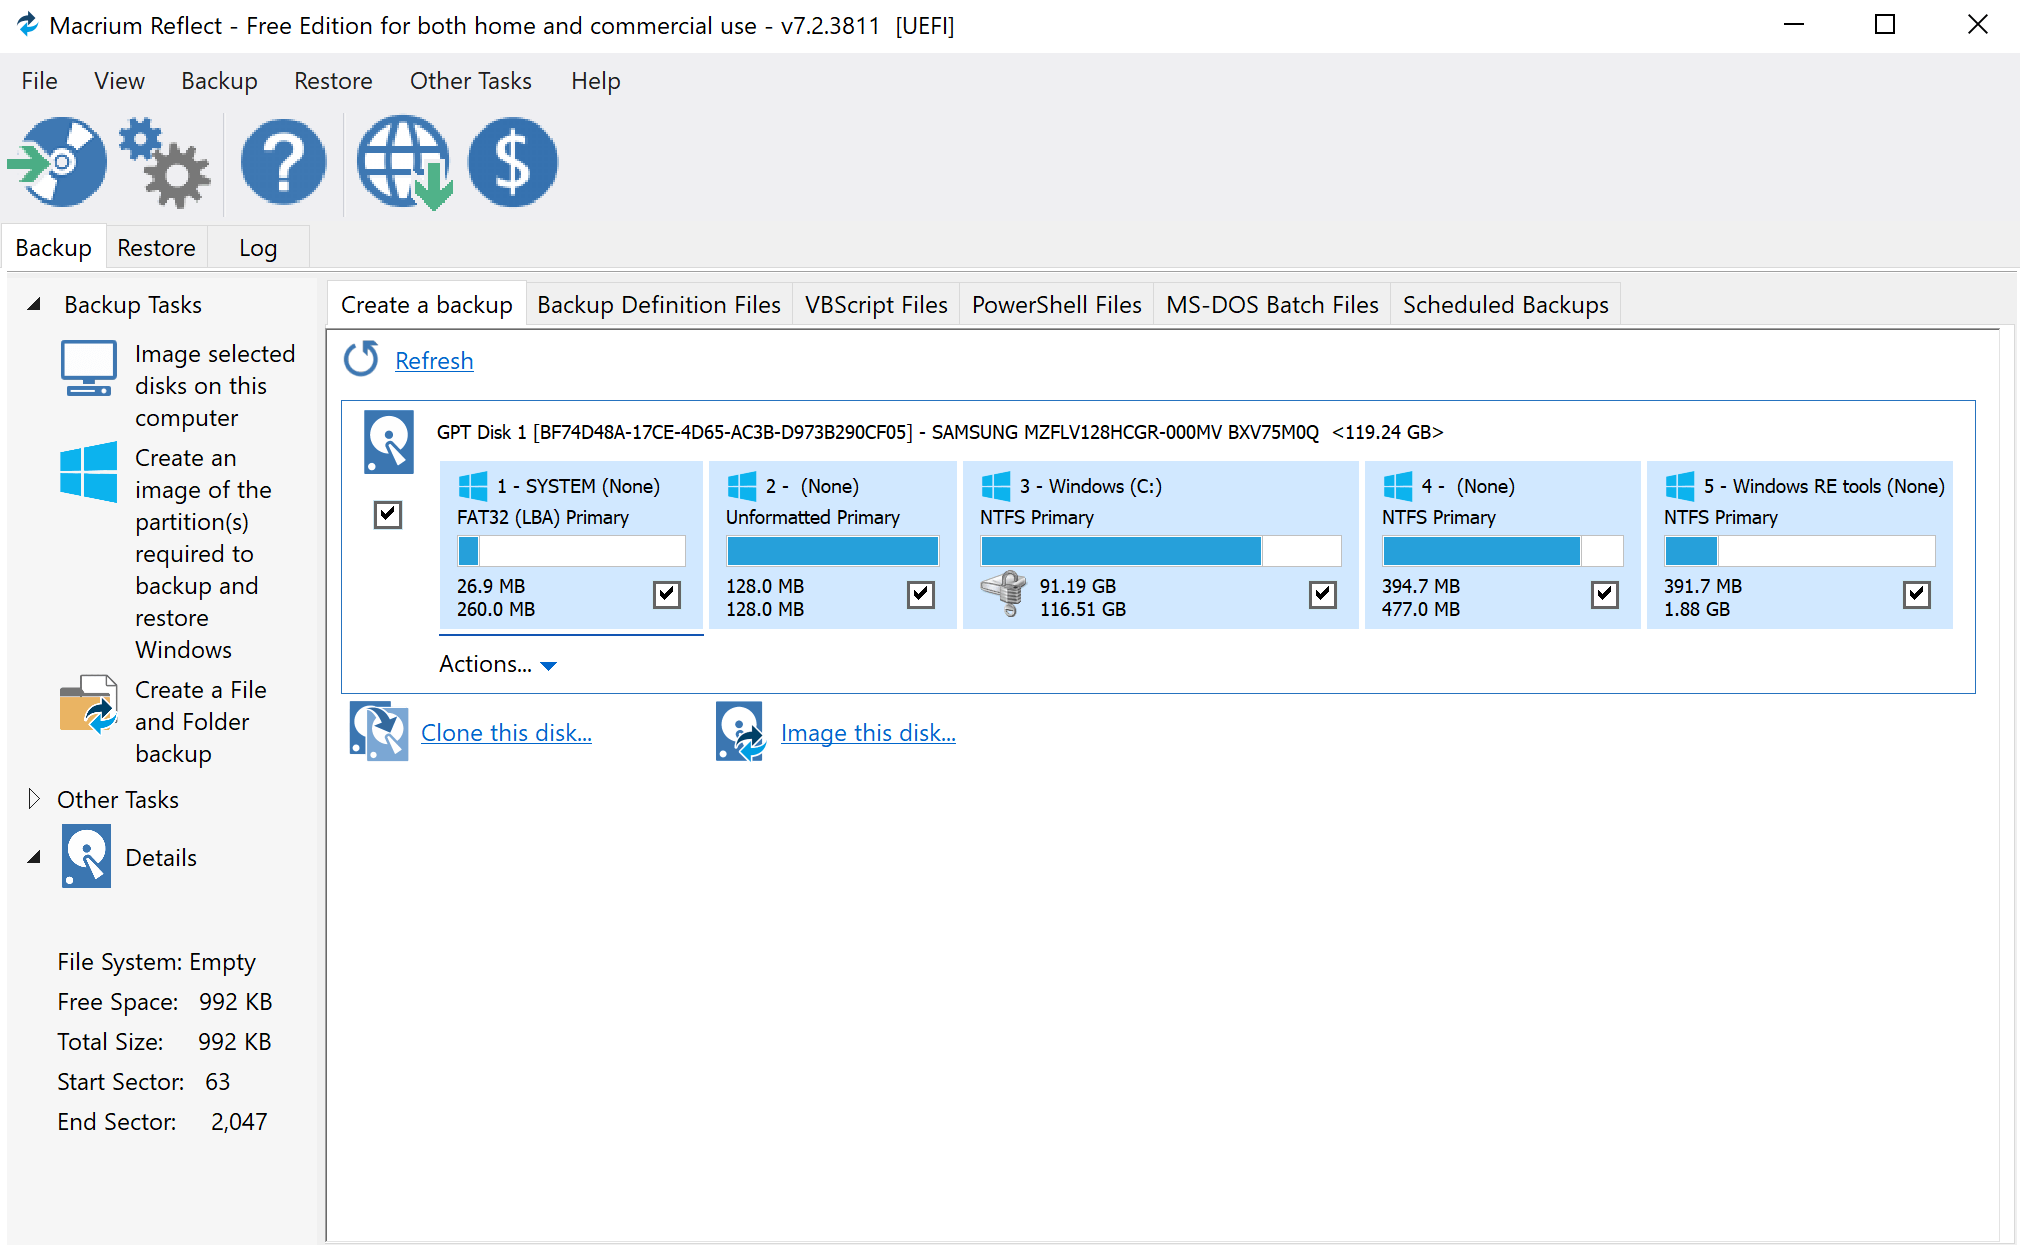 Backup Program Macrium Reflect 7.2 released with lots of changes